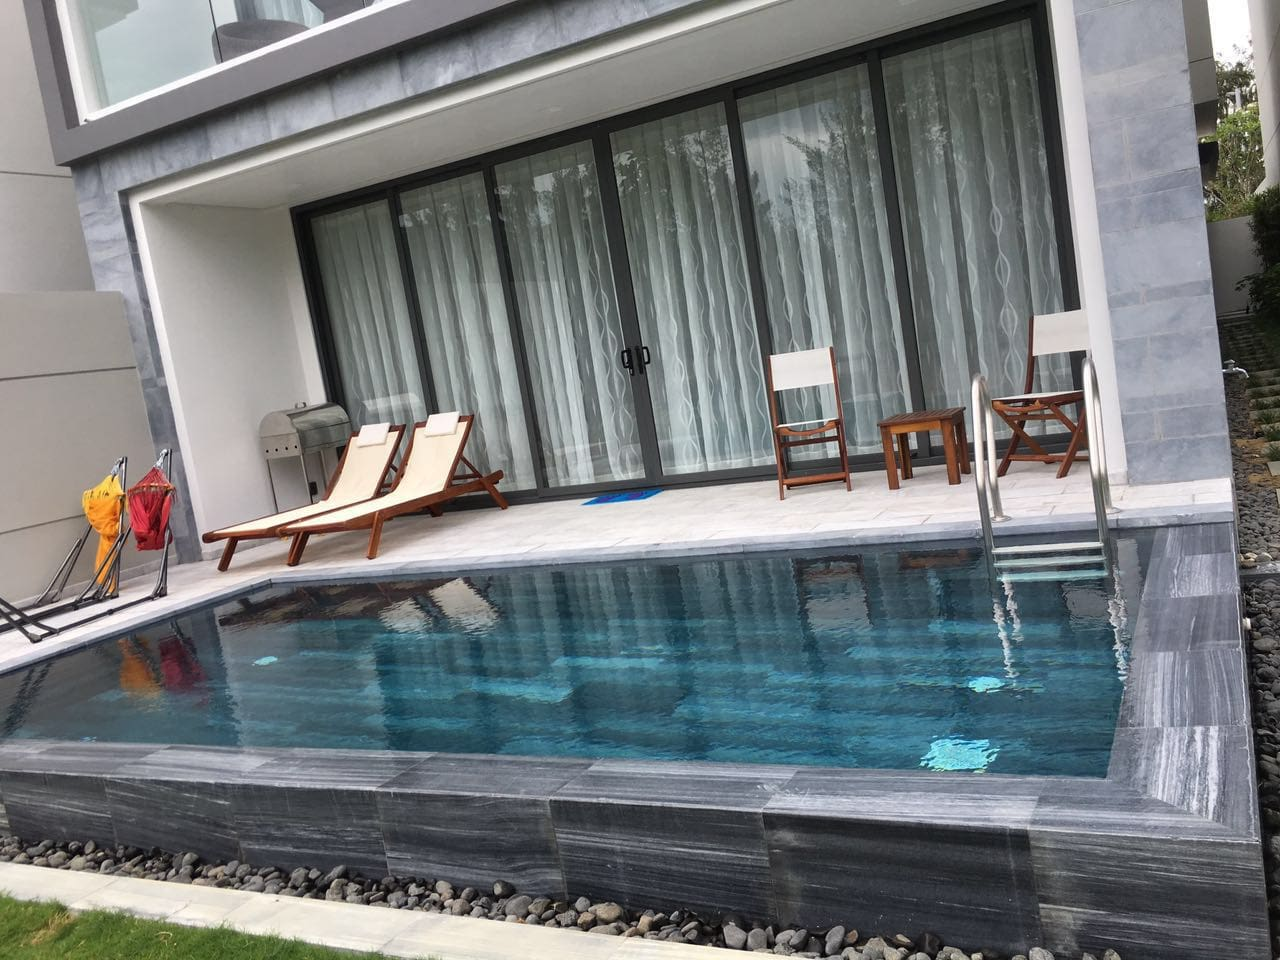 Beautiful private pool, BBQ, sun loungers and hammocks. Perfect for relaxing together in the sunshine.